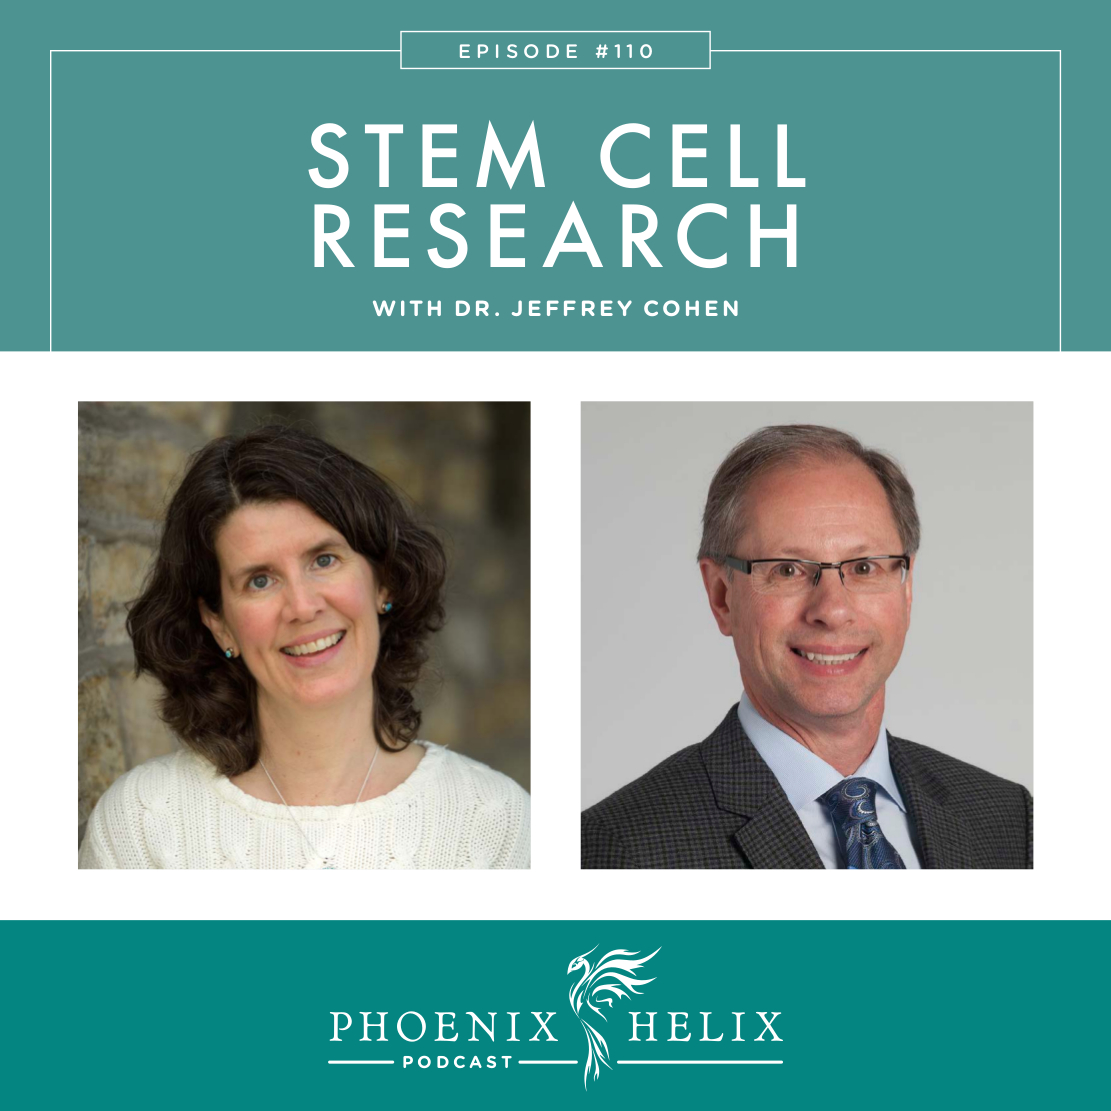 Stem Cell Research with Dr. Jeffrey Cohen | Phoenix Helix Podcast